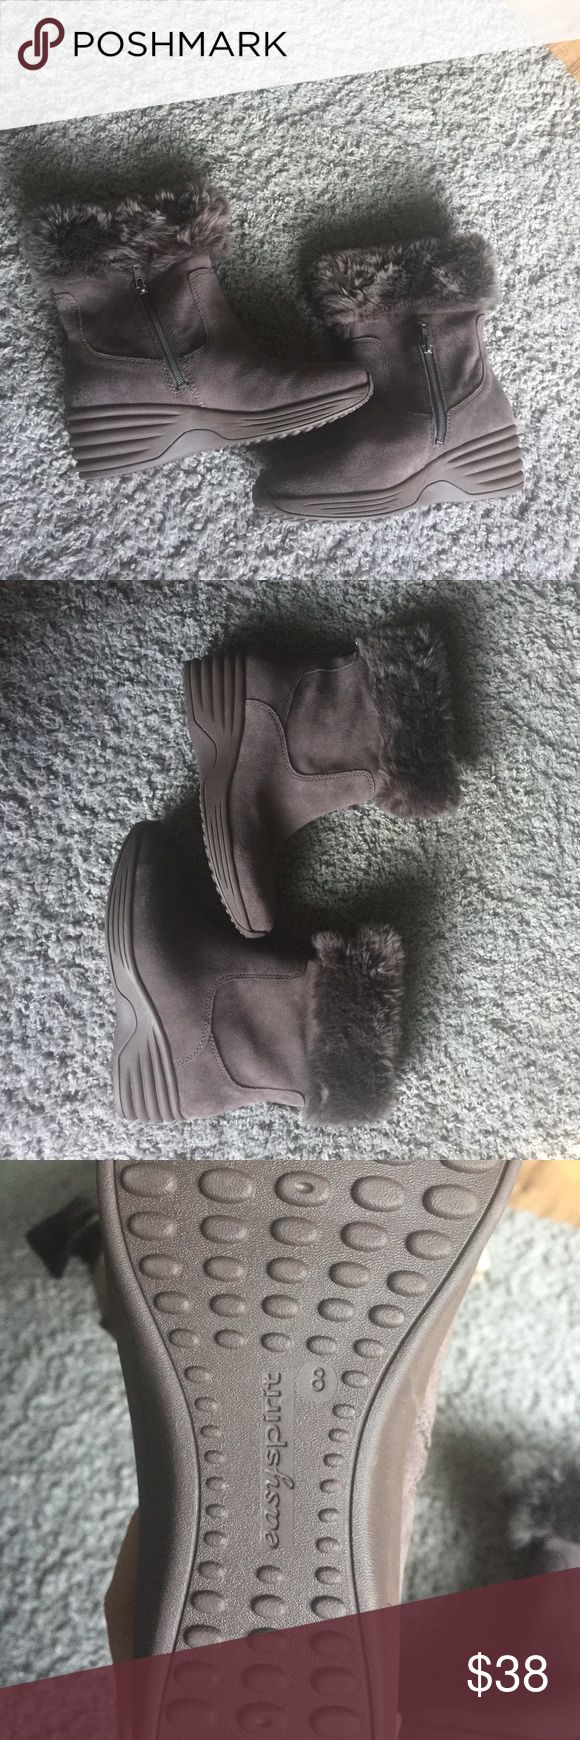 BRAND NEW easy spirit winter boots Never worn, brand new in box. Easy spirit boots- they were not cheap! Perfect condition, furry part around calf.  The inside is NOT fit. Extremely Comfortable boots perfect for shoveling snow or whatever! Easy Spirit Shoes Winter & Rain Boots